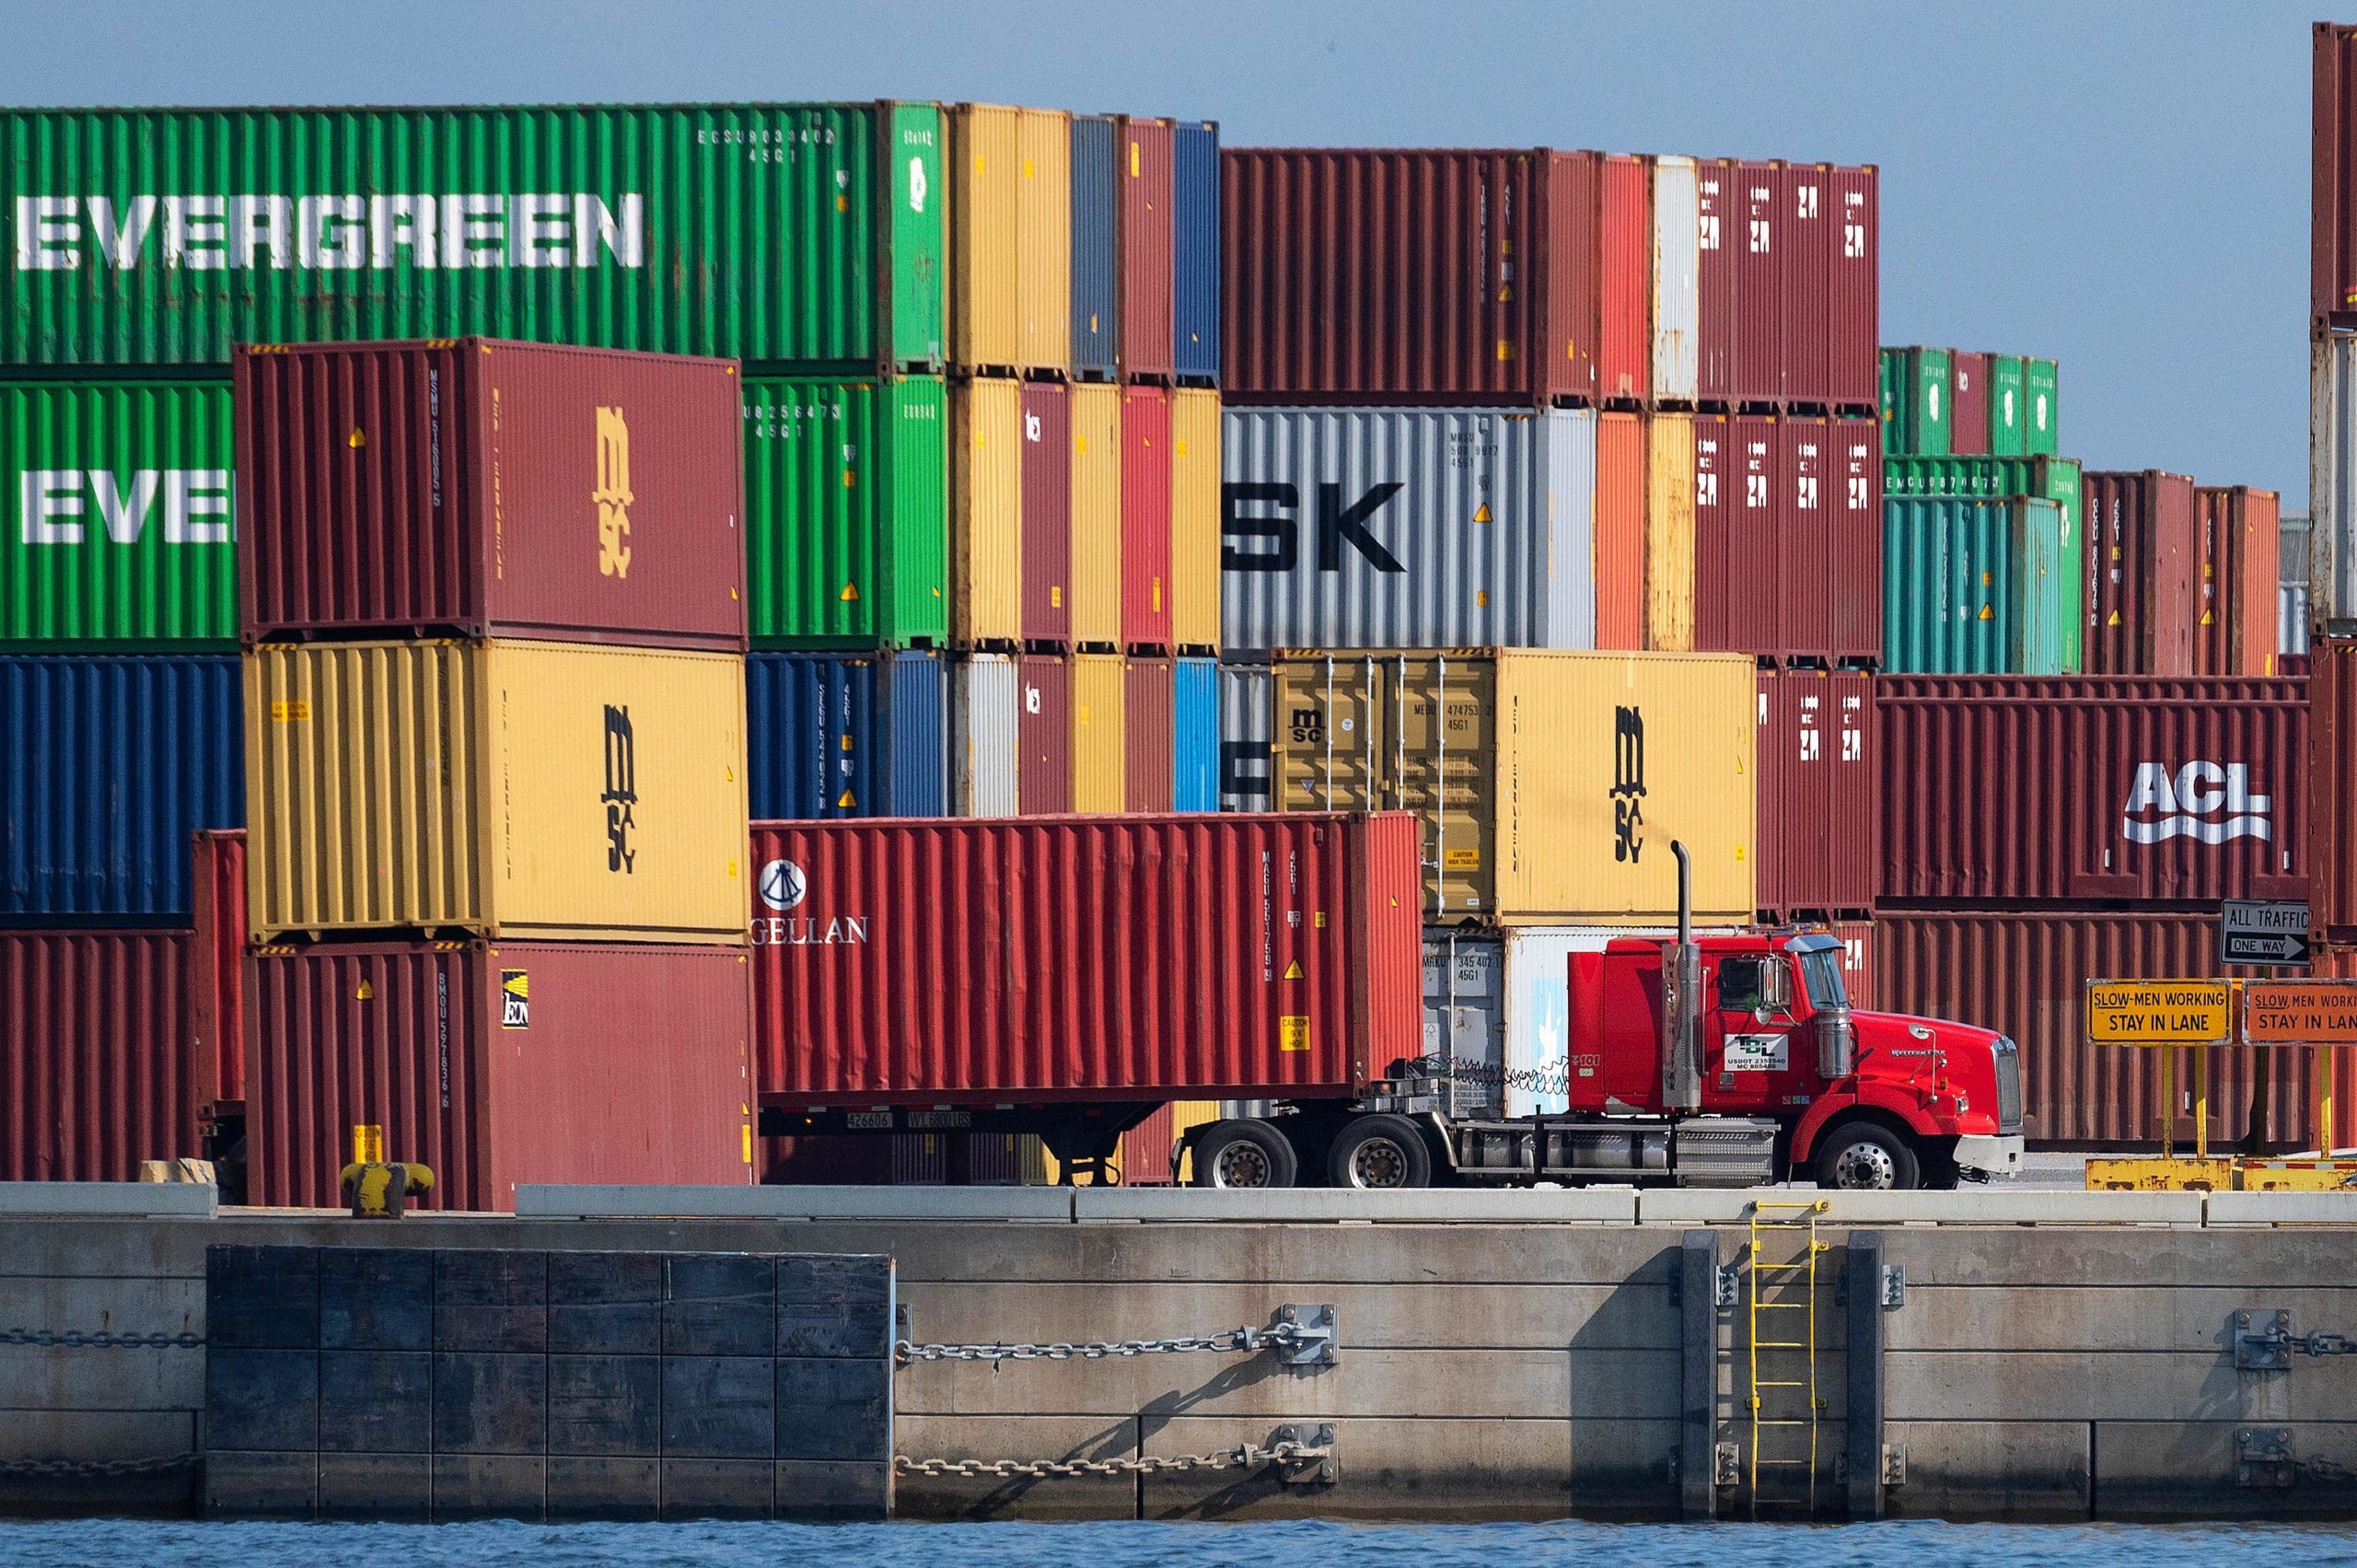 A truck driver passes stacked cargo containers at the Port of Baltimore in Baltimore, Maryland, on October 14, 2021. - Closed factories, clogged ports, no truck drivers -- up and down the global supply chain there are problems, raising concerns that it could disrupt the global economic recovery. (Photo by Jim WATSON / AFP) (Photo by JIM WATSON/AFP via Getty Images)